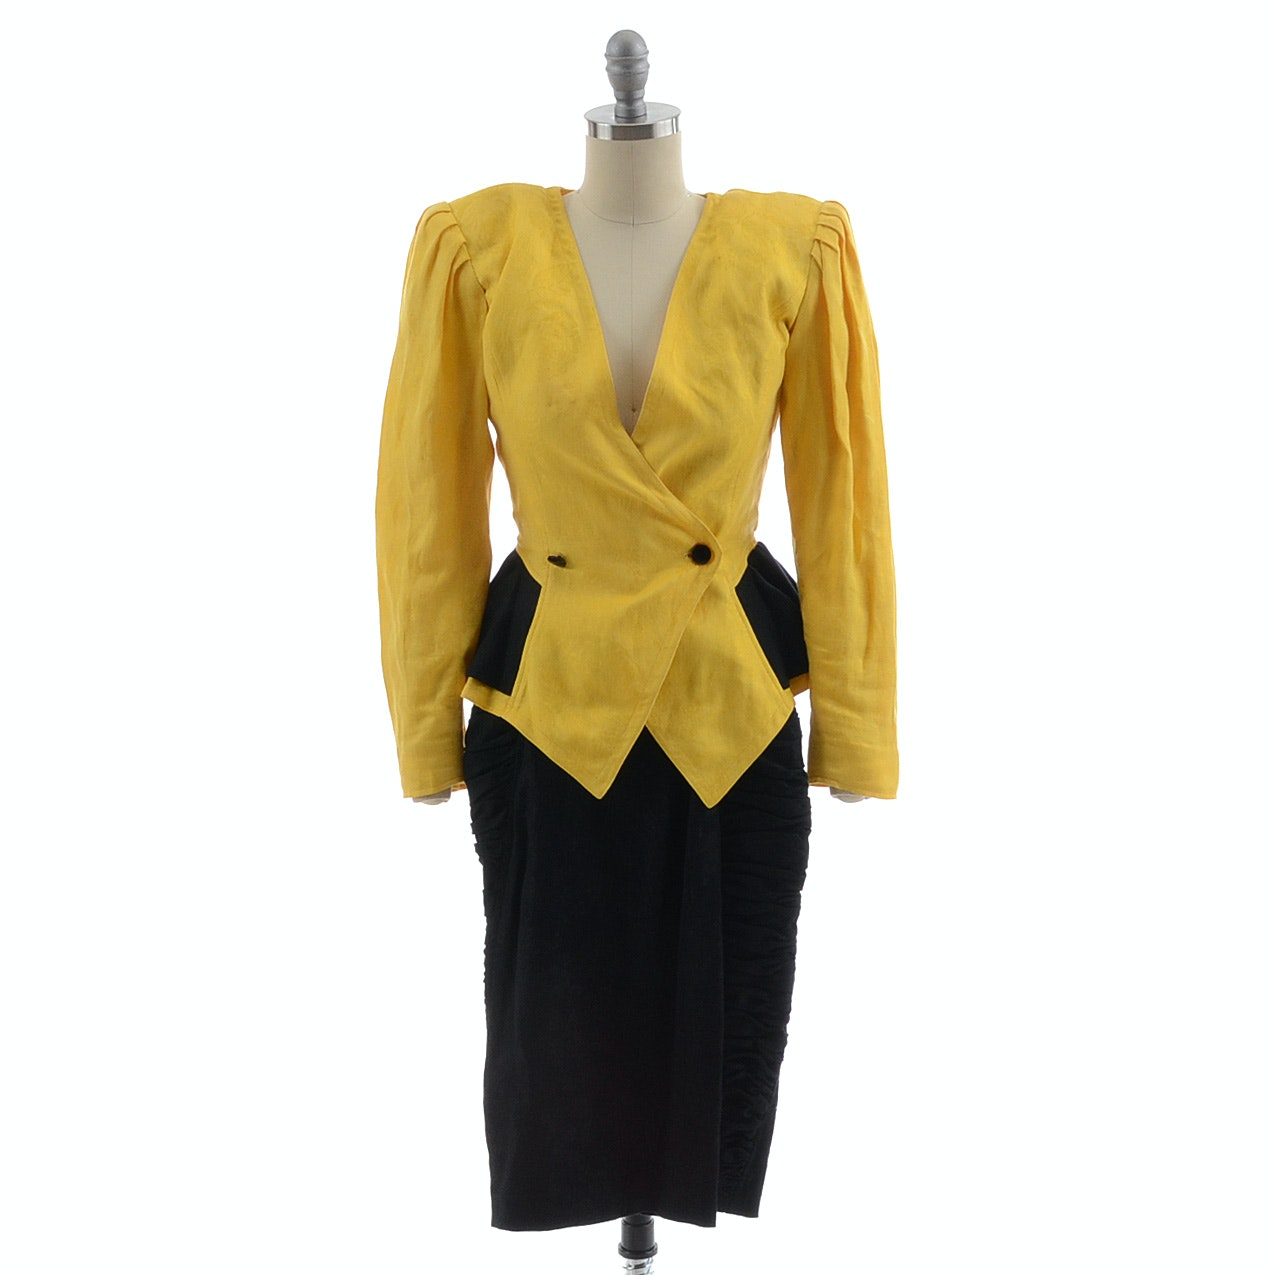 1980s Emanuel Ungaro Paralle of Paris Yellow and Black Brocade Linen and Cotton Blend Peplum Suit Jacket with Ruched Skirt